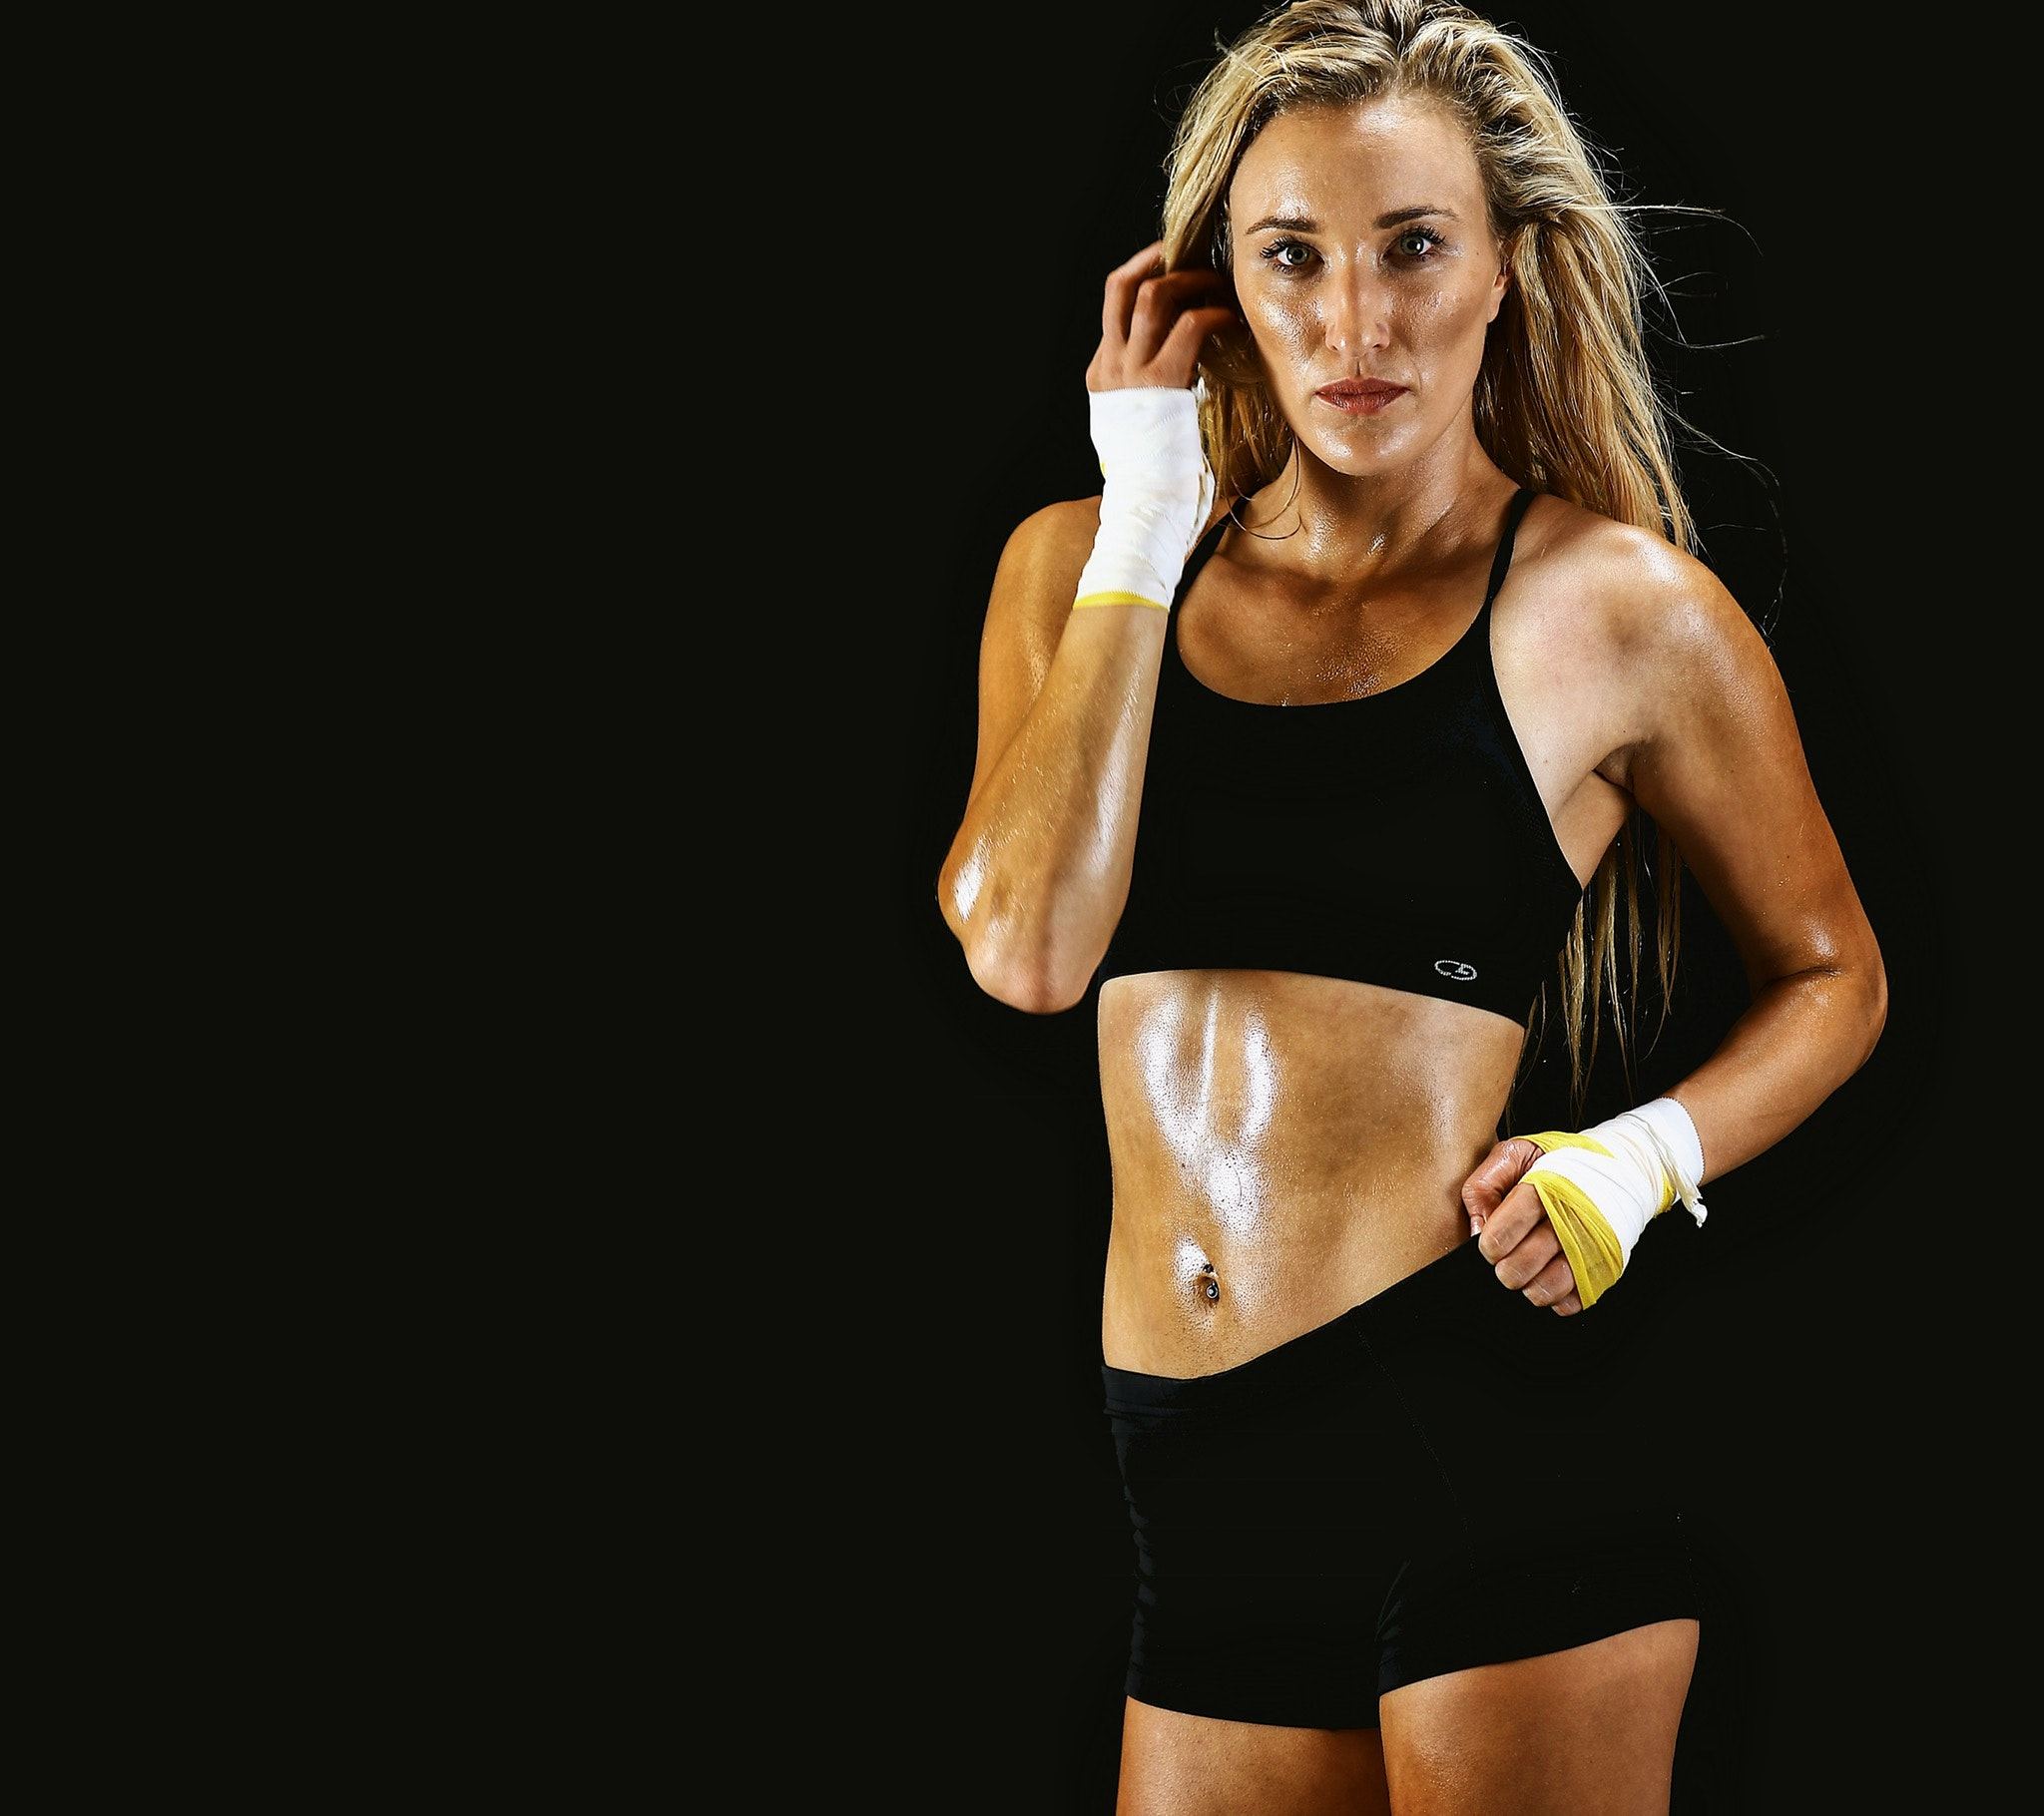 Woman Wearing Black Sports Bra and Shorts With Black Background, Adult, Indoors, Woman, Wear, HQ Photo